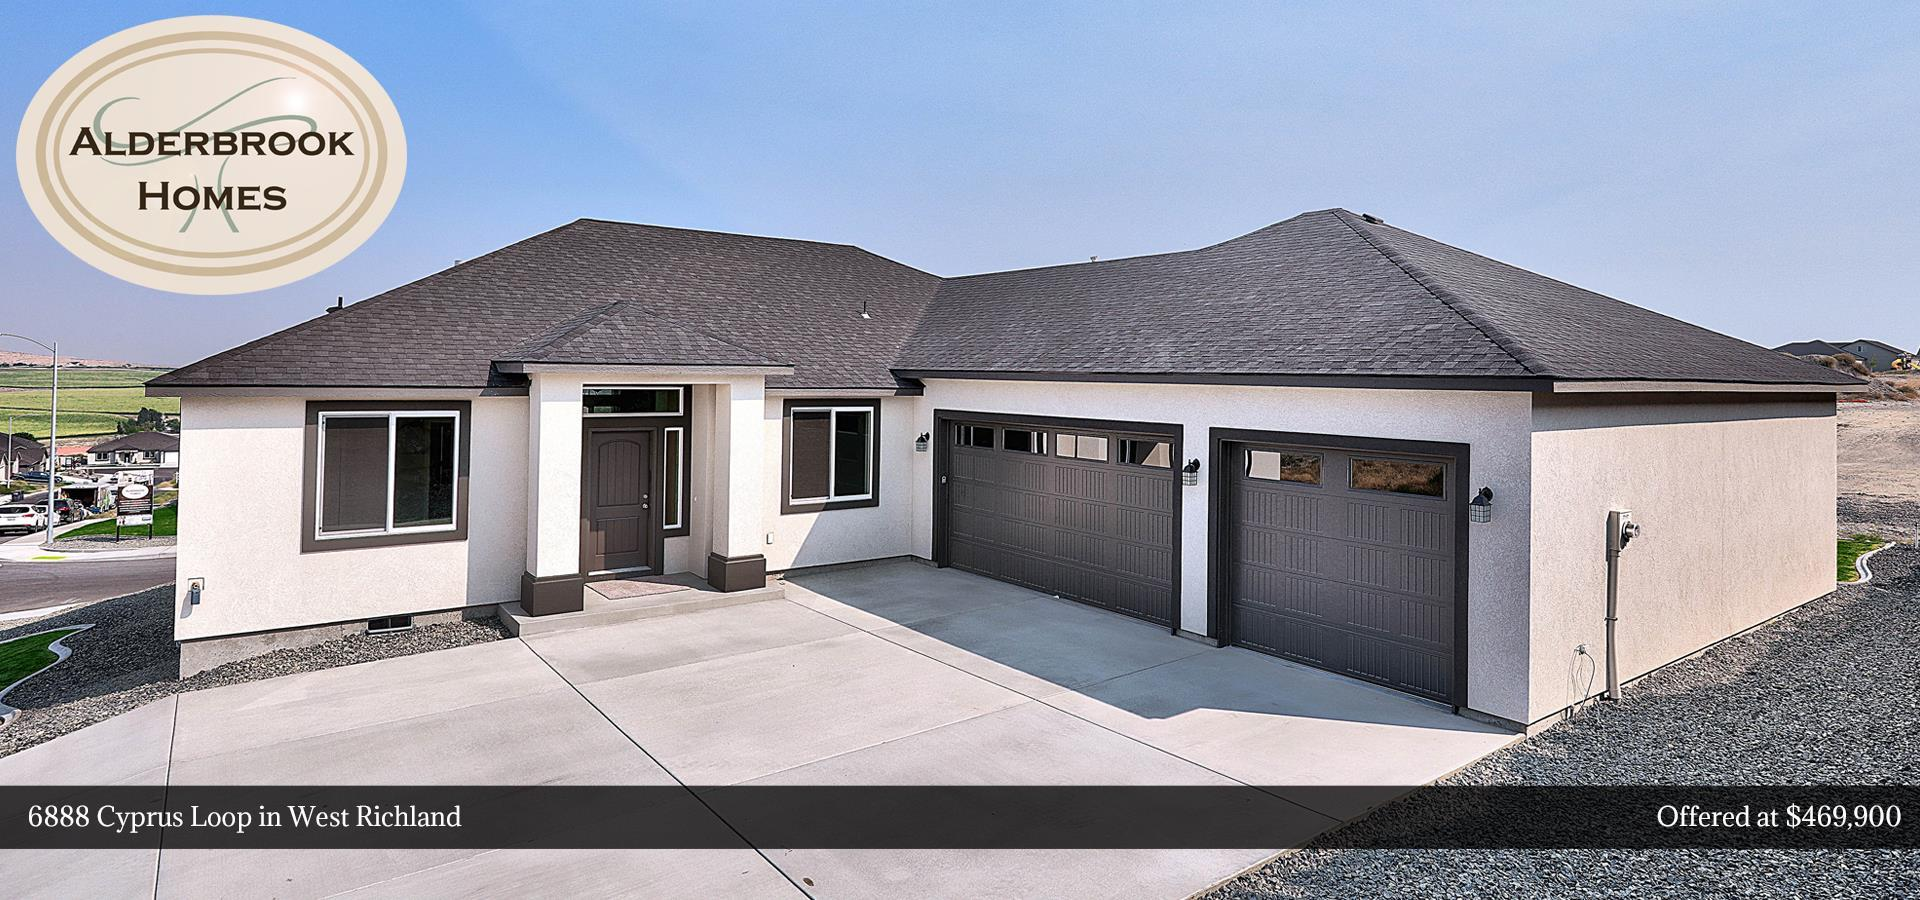 Garage Builders Tri Cities Wa Laura Harris Hodges Search For Properties In Tri Cities Wa